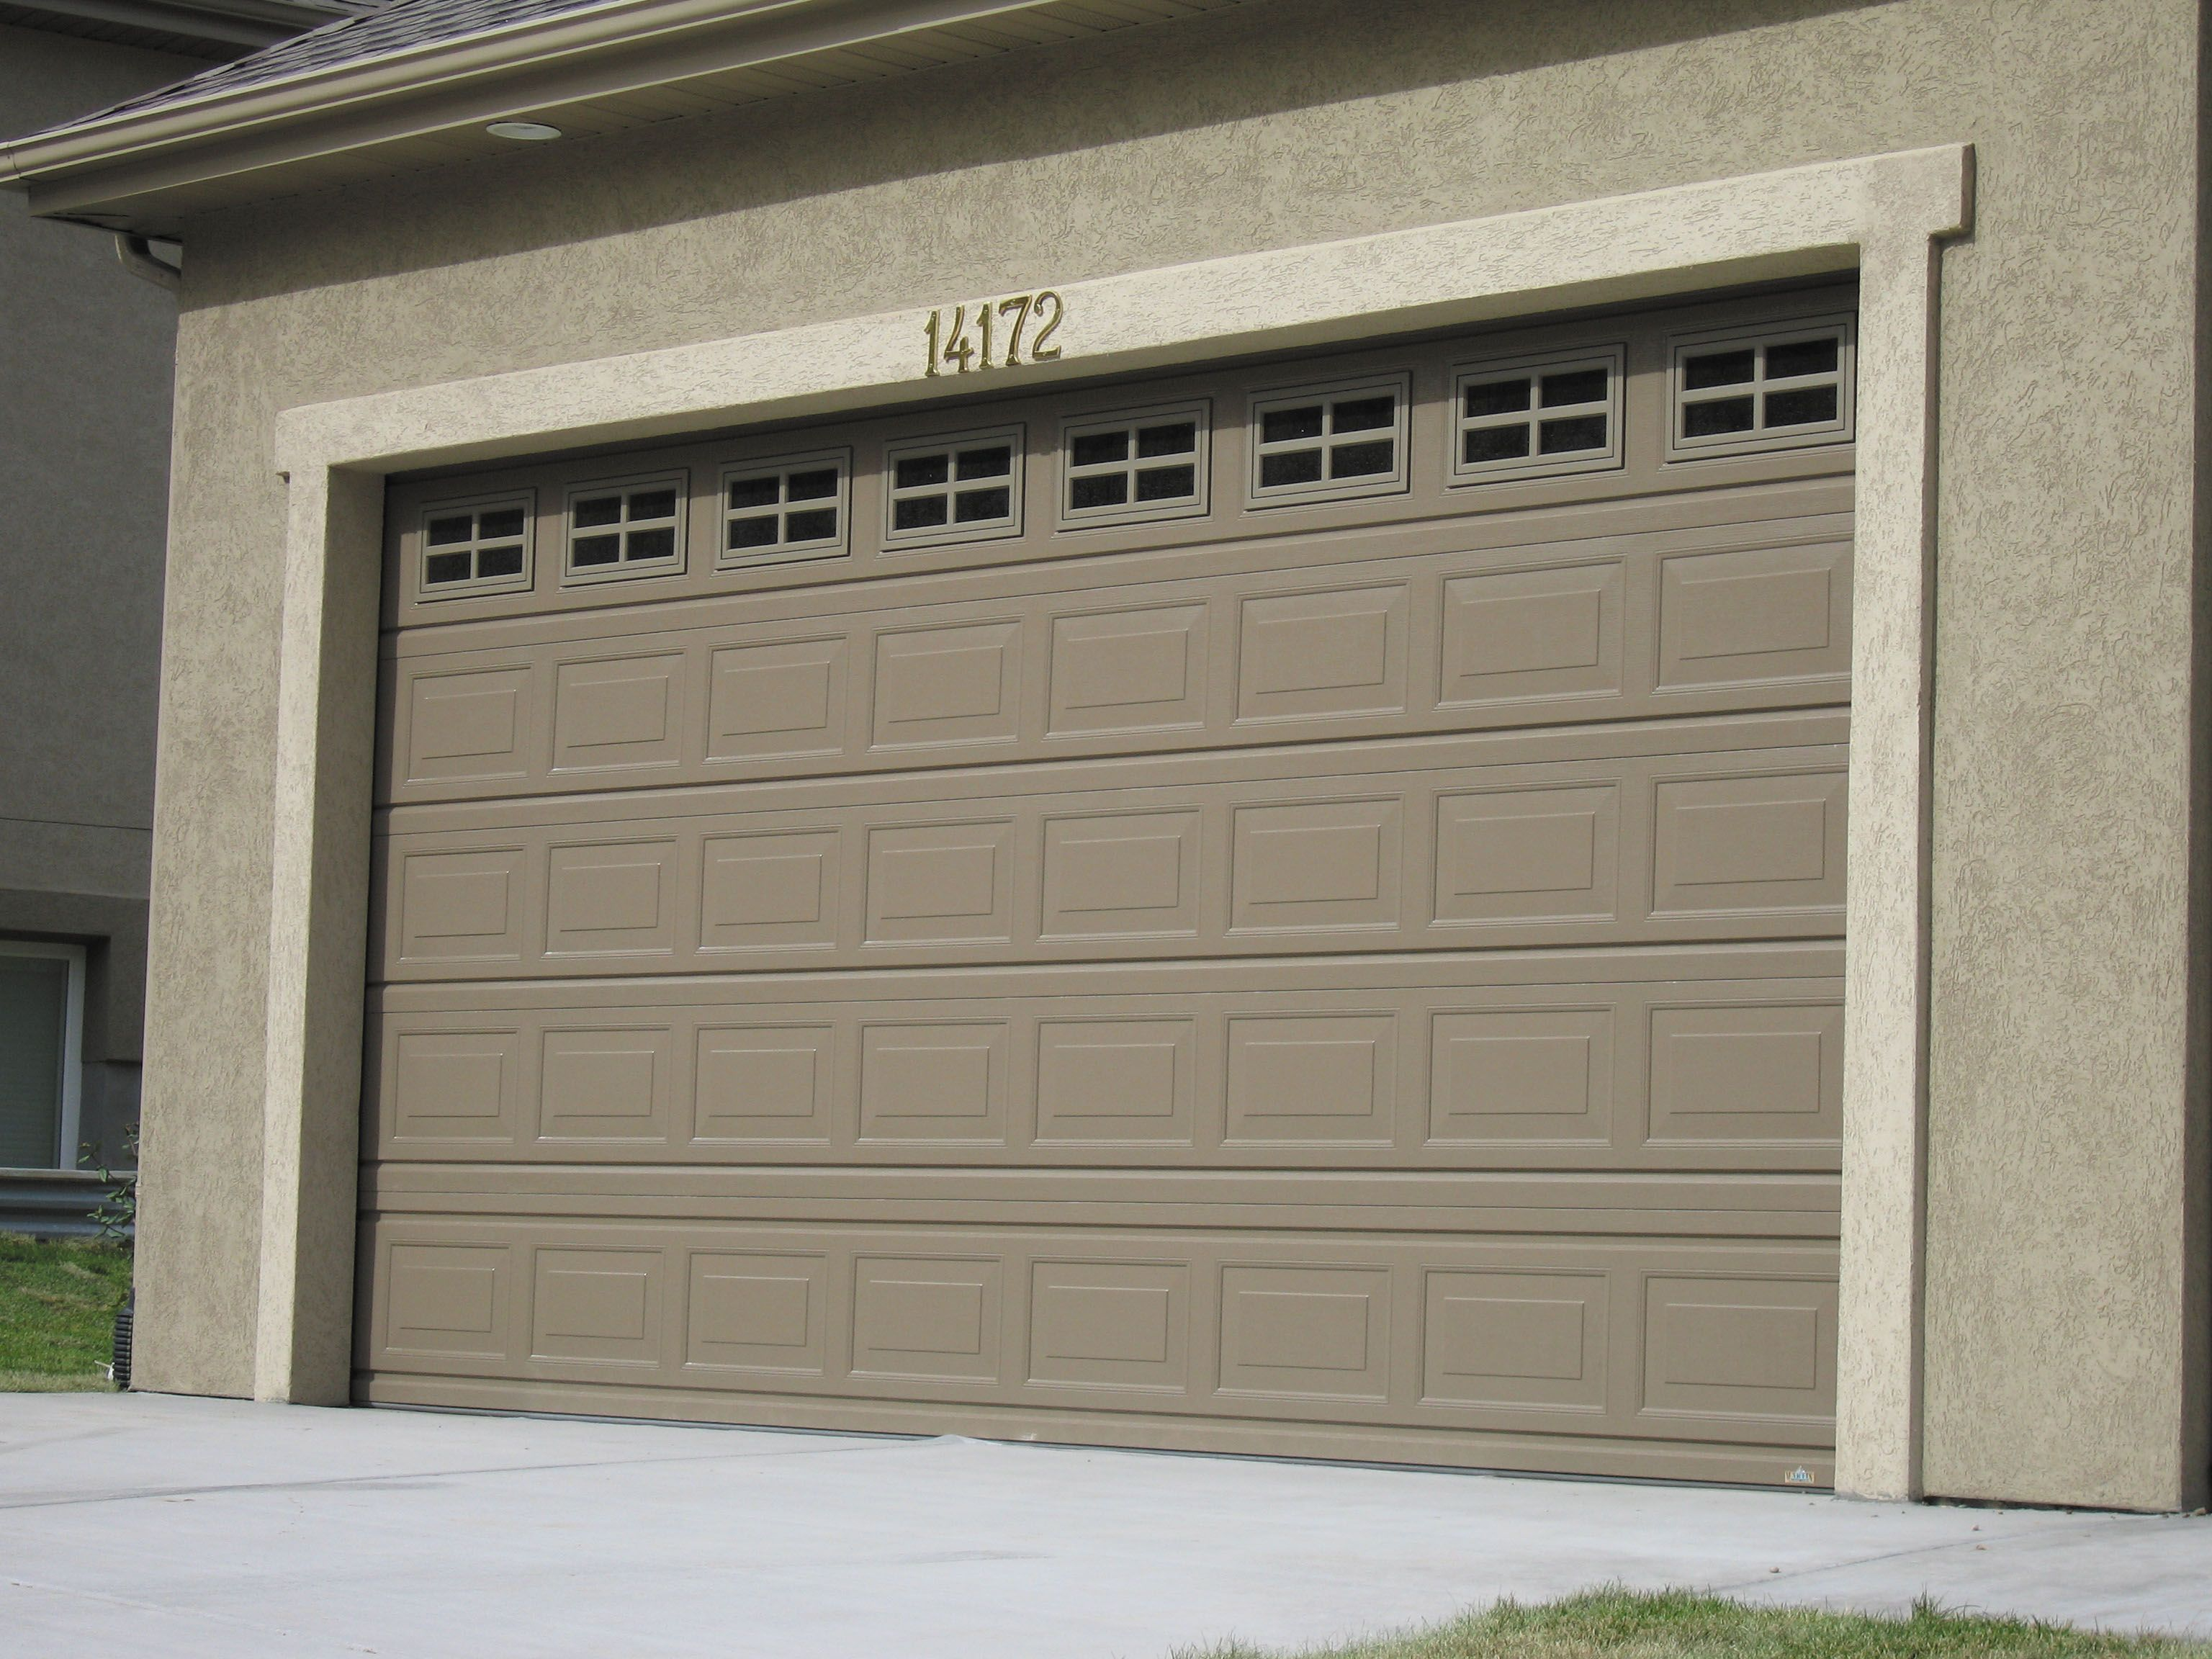 bdb3e92e4a62 Garage door style to match front door windows. Maybe in light almond or desert  taupe.